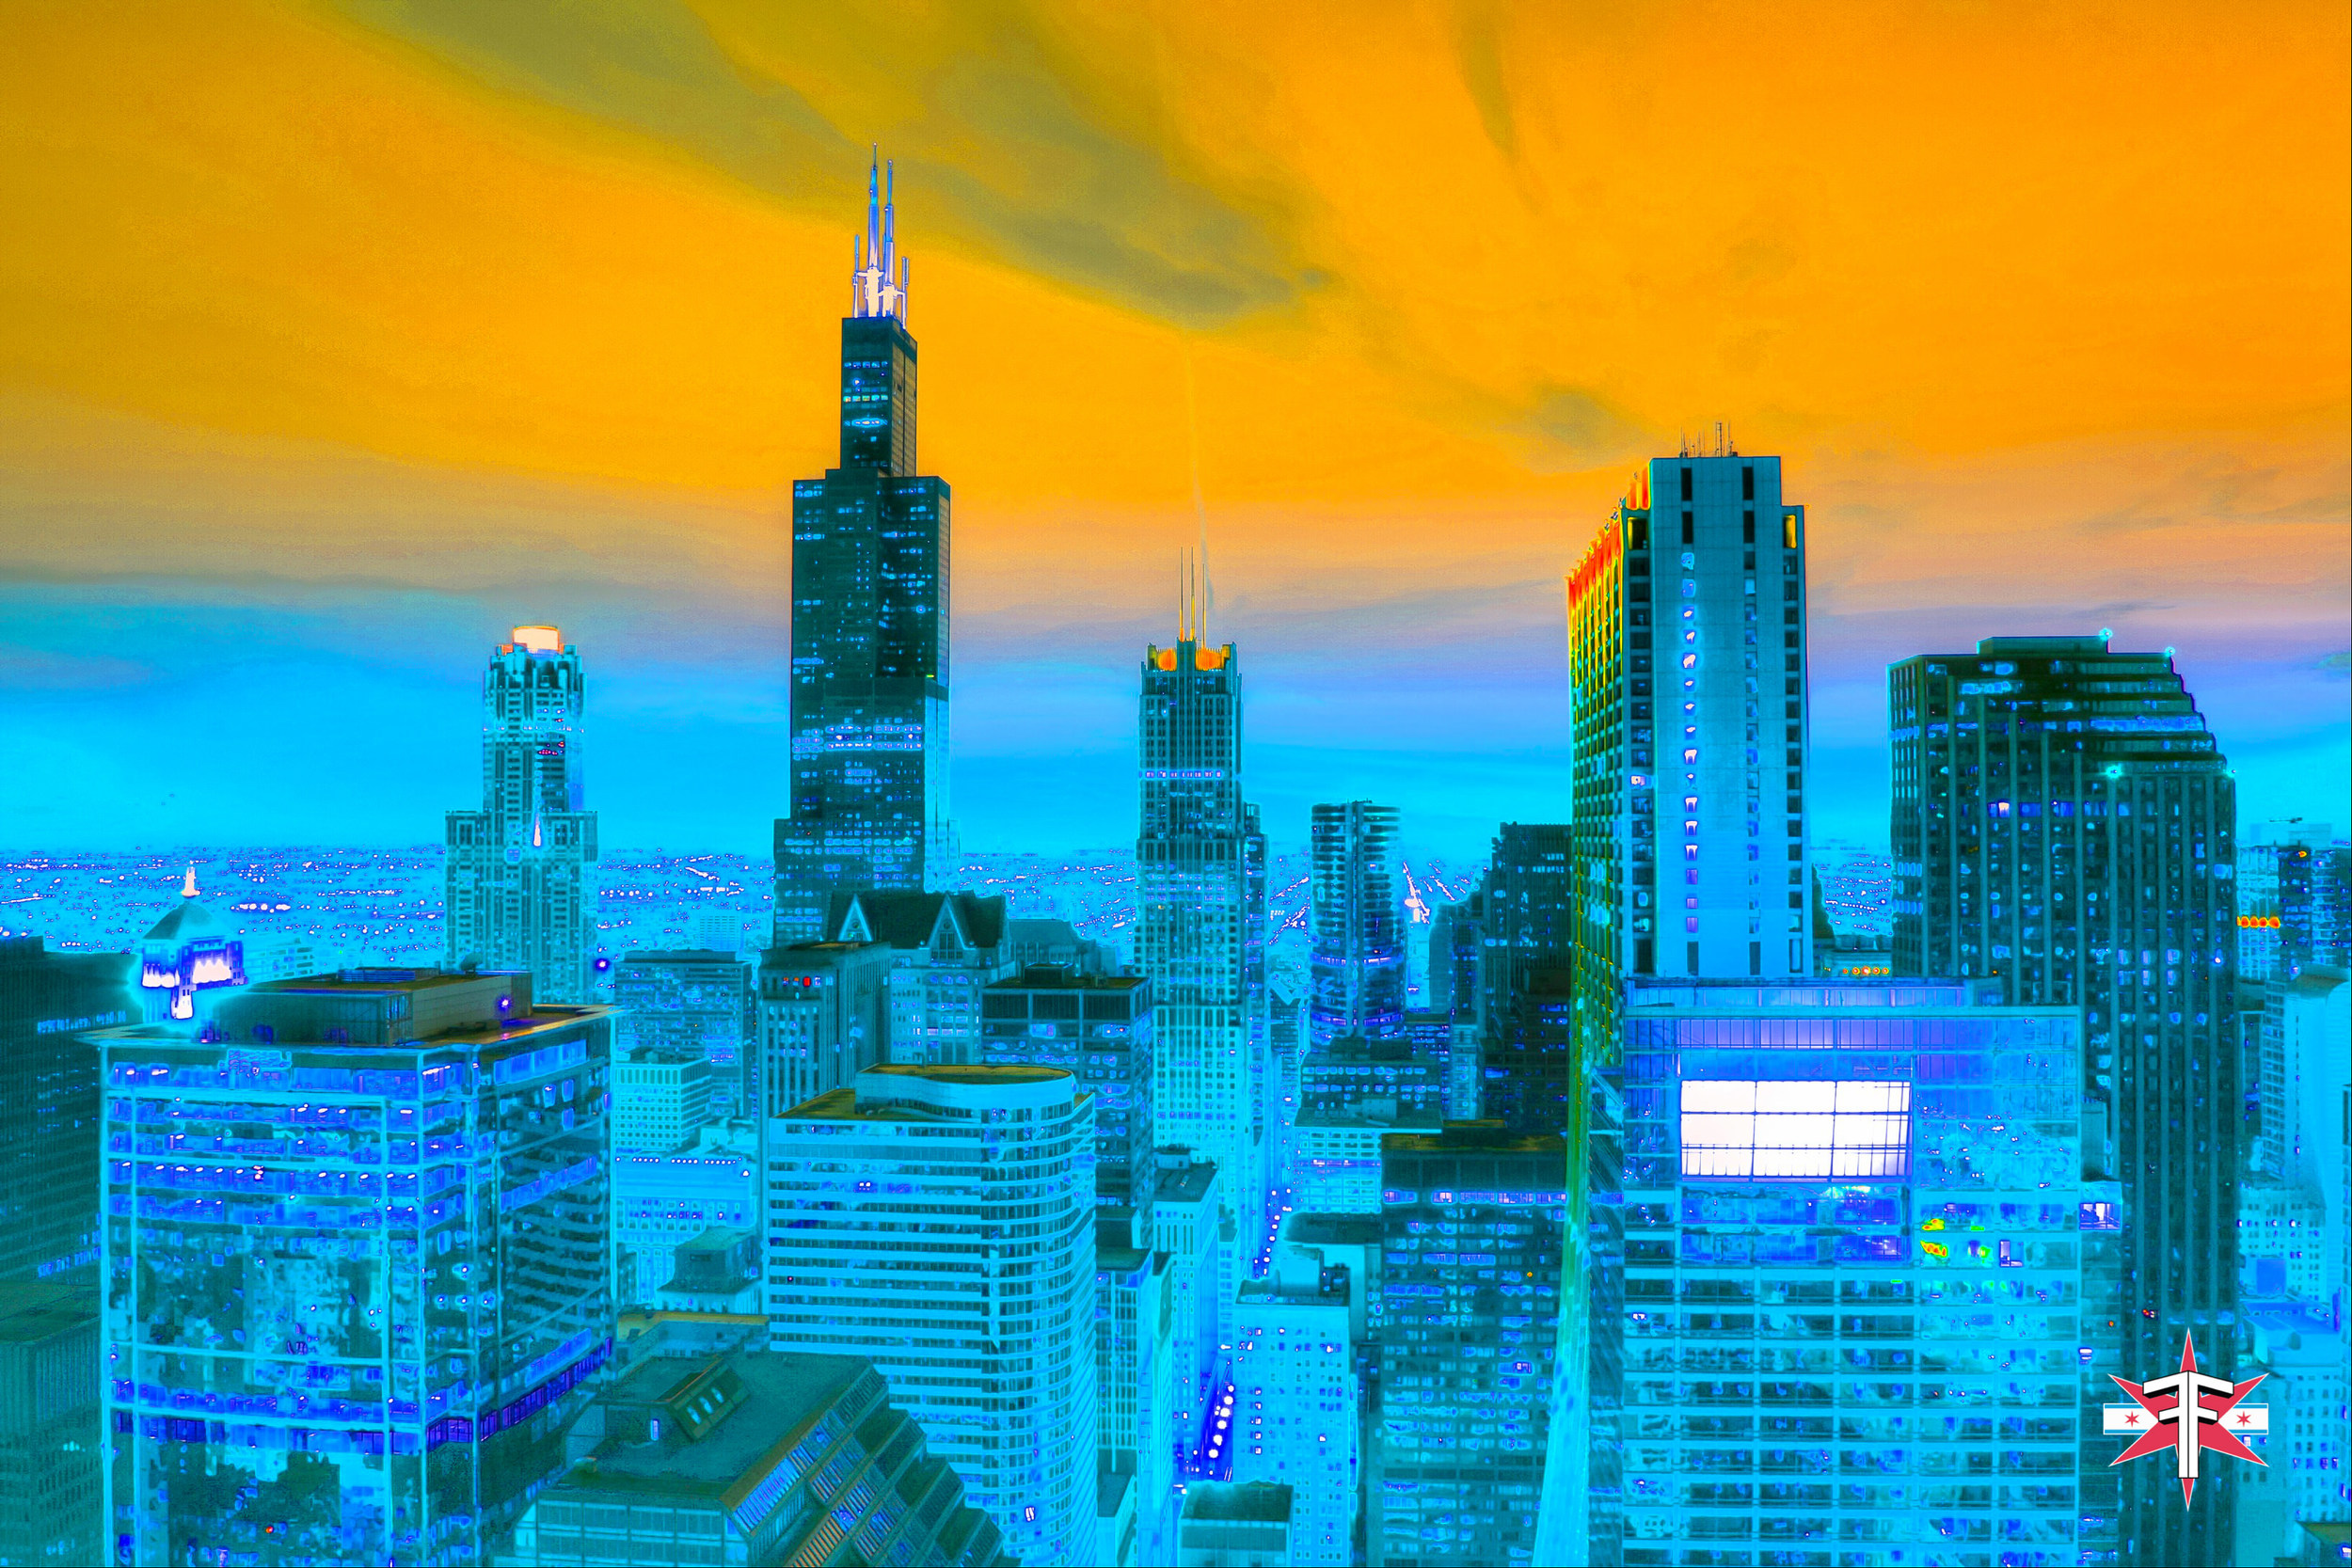 chicago art abstract eric formato photography color travel cityscape architecture saturated citycapes bright vibrant artistic-17.jpg